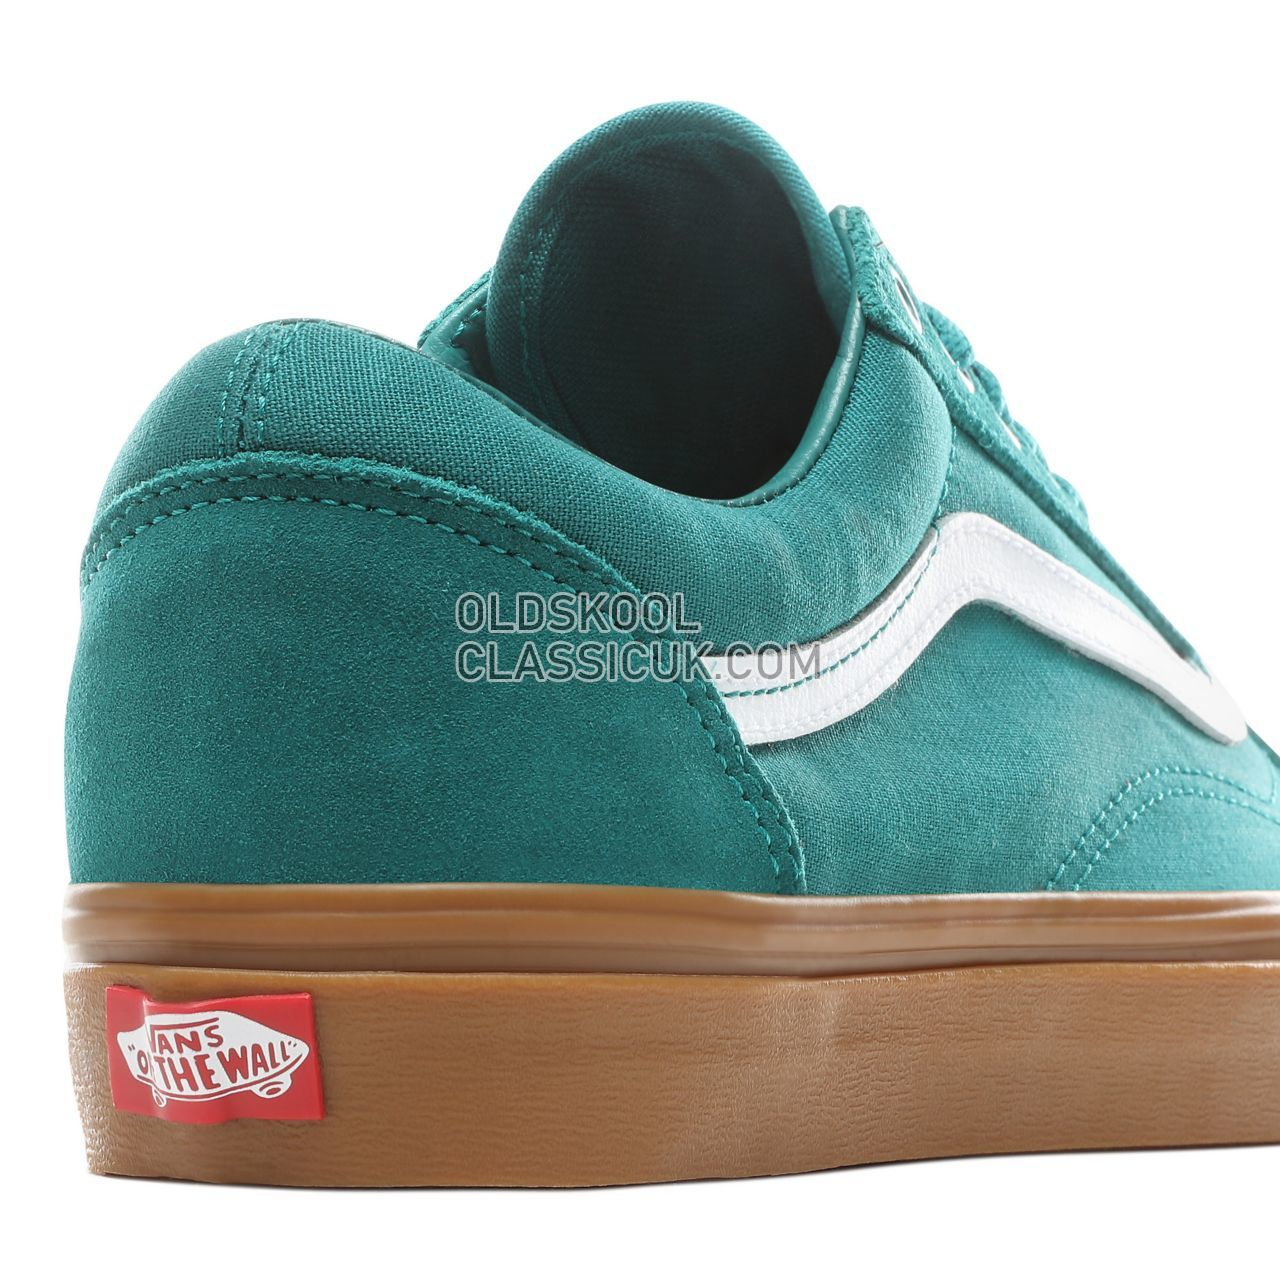 afa9520ef6a ... Vans Old Skool Sneakers Mens Womens Unisex Quetzal Green Gum  VN0A38G1VKU Shoes